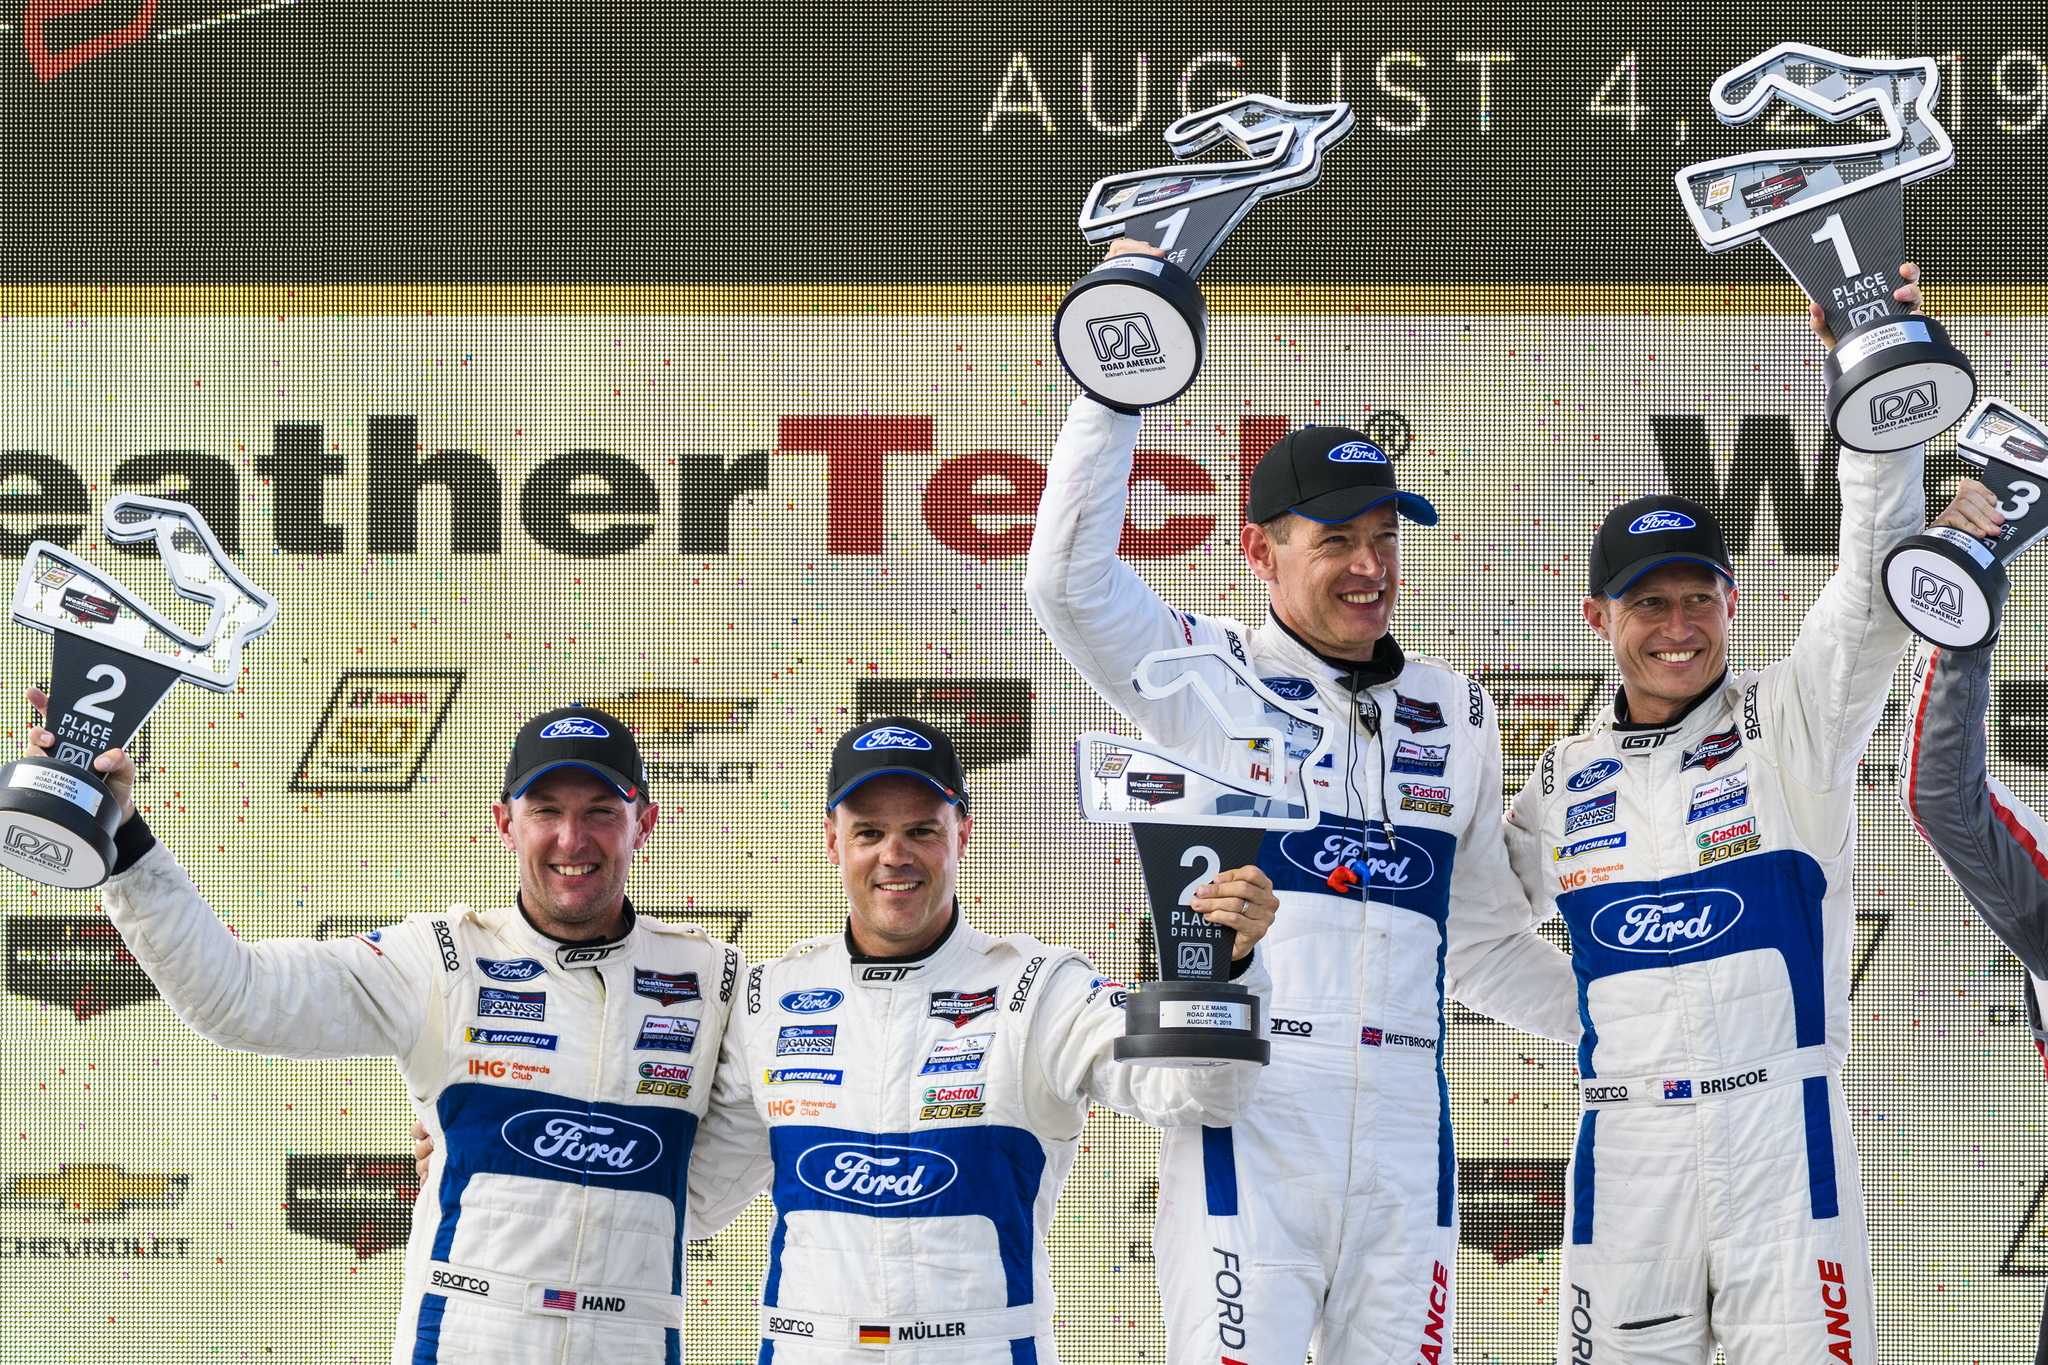 Ford Chip Ganassi Racing Finishes 1-2 at Road America